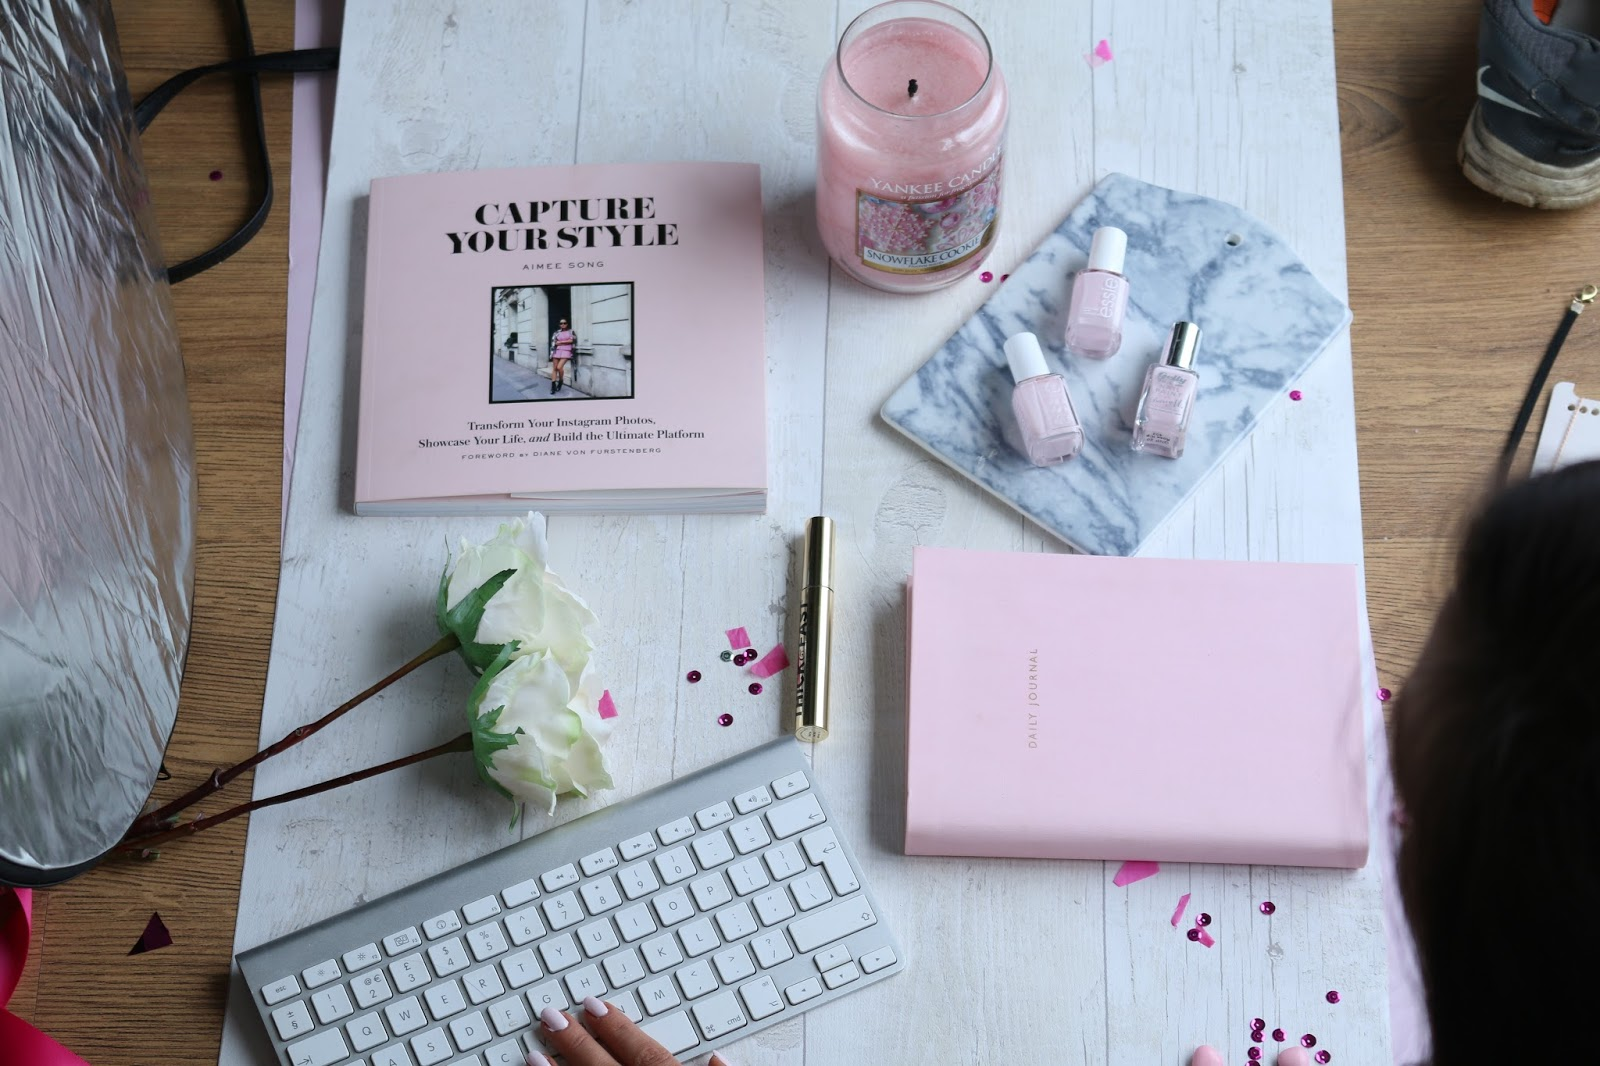 Lifestyle, Photography, Blogging, Flatlays,how to take flat lays, blog photos, behind the scenes of flat lays, what goes into taking a flat lay, real life blogging